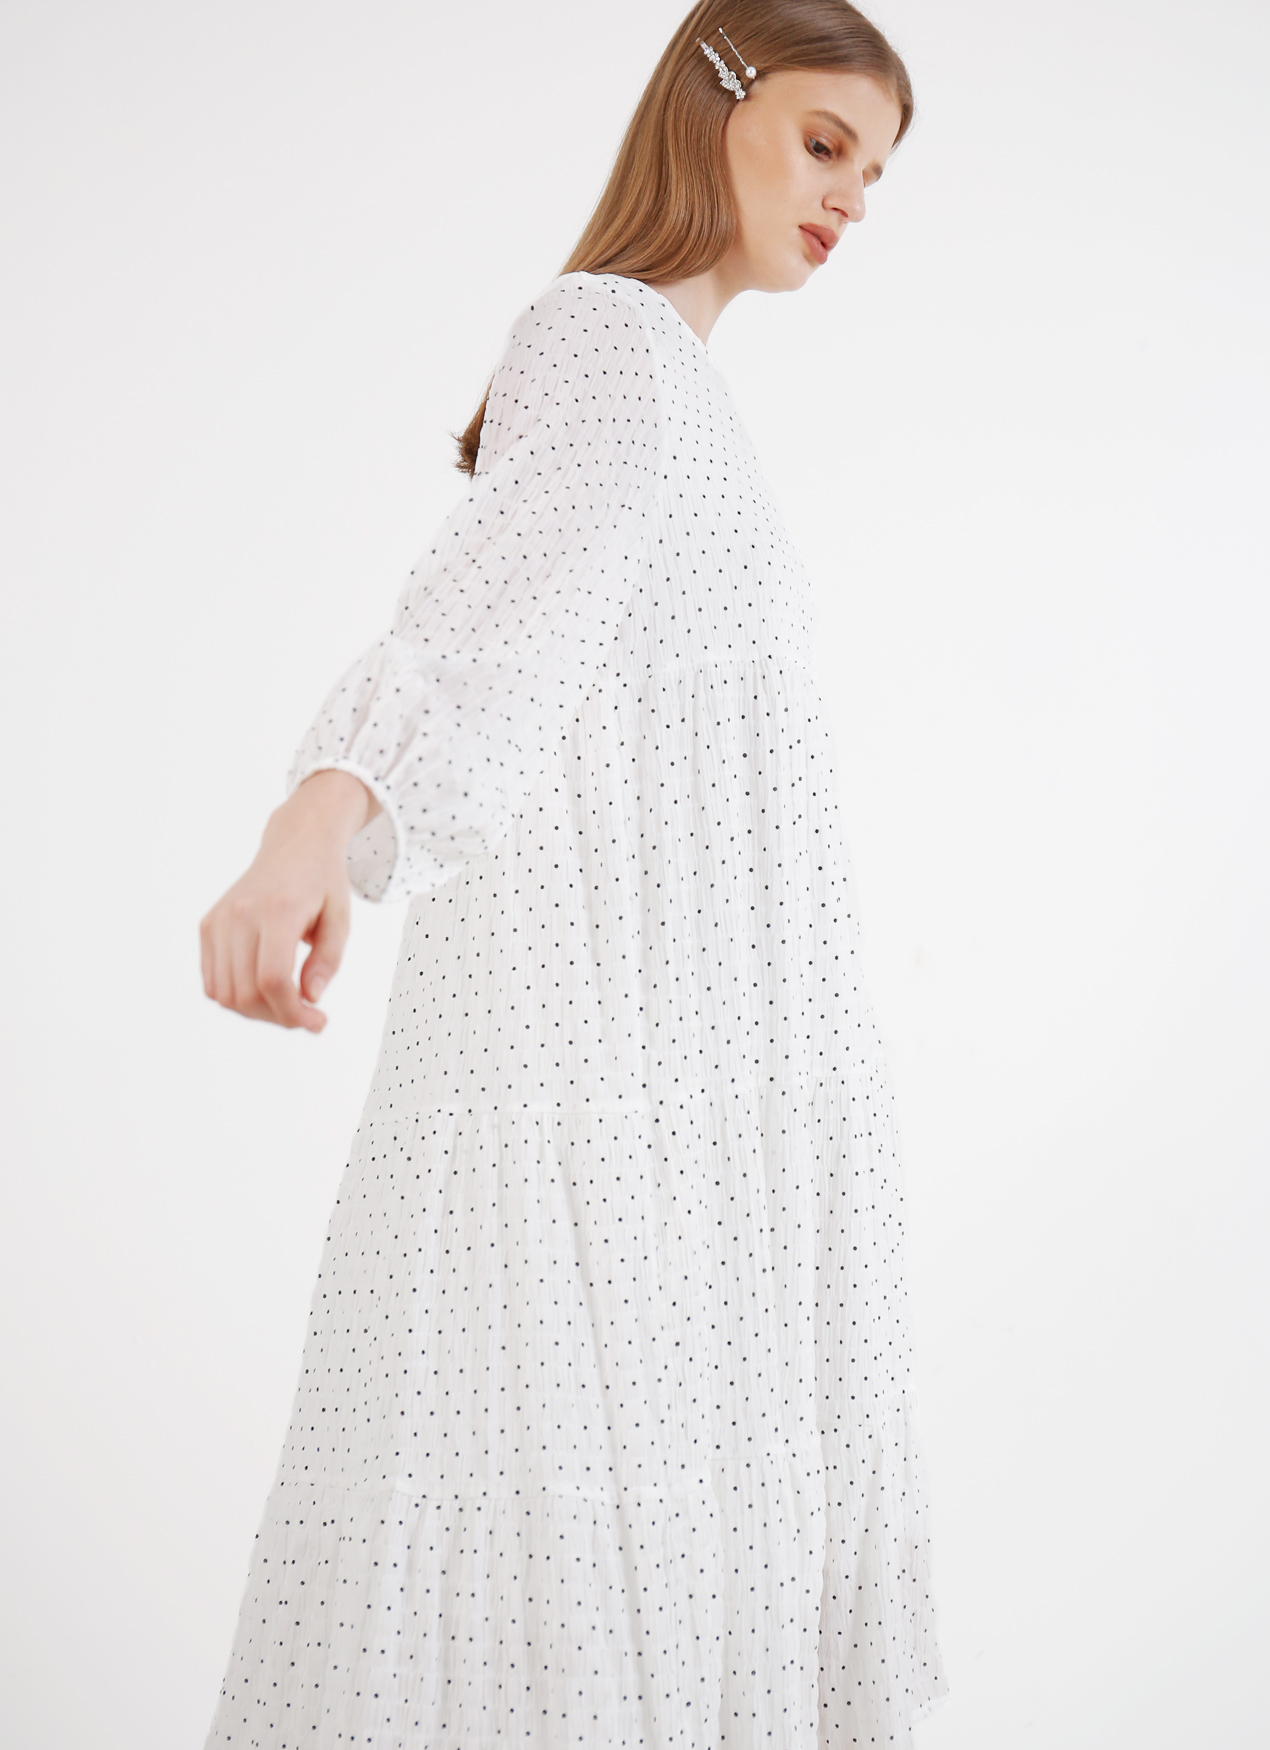 BOWN Nadya Dress - White